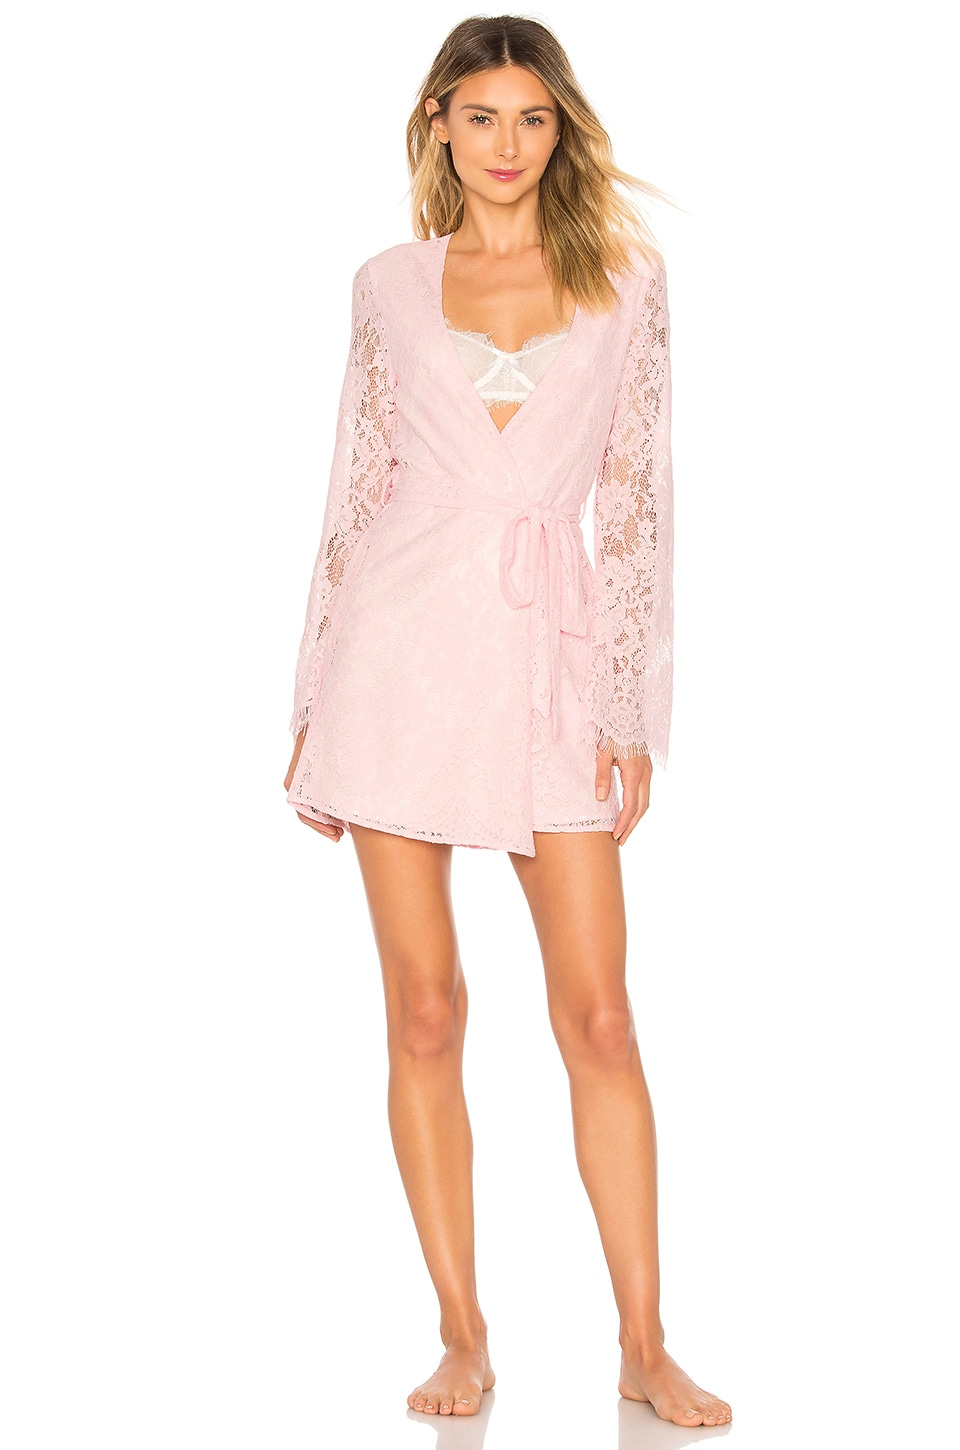 MAJORELLE Alexandra Robe in Baby Pink